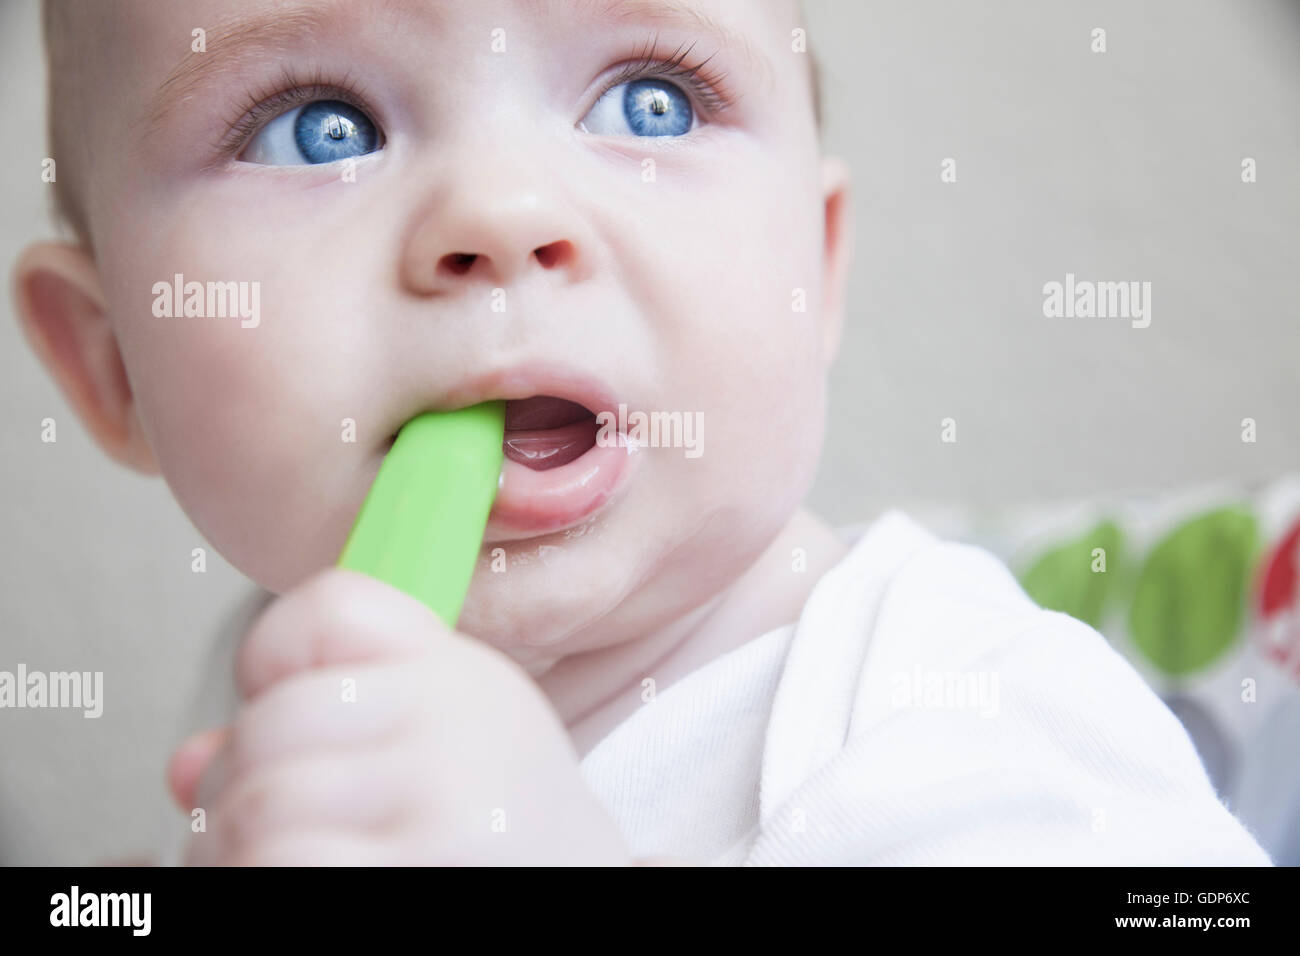 Close up of baby boy chewing teething toy - Stock Image